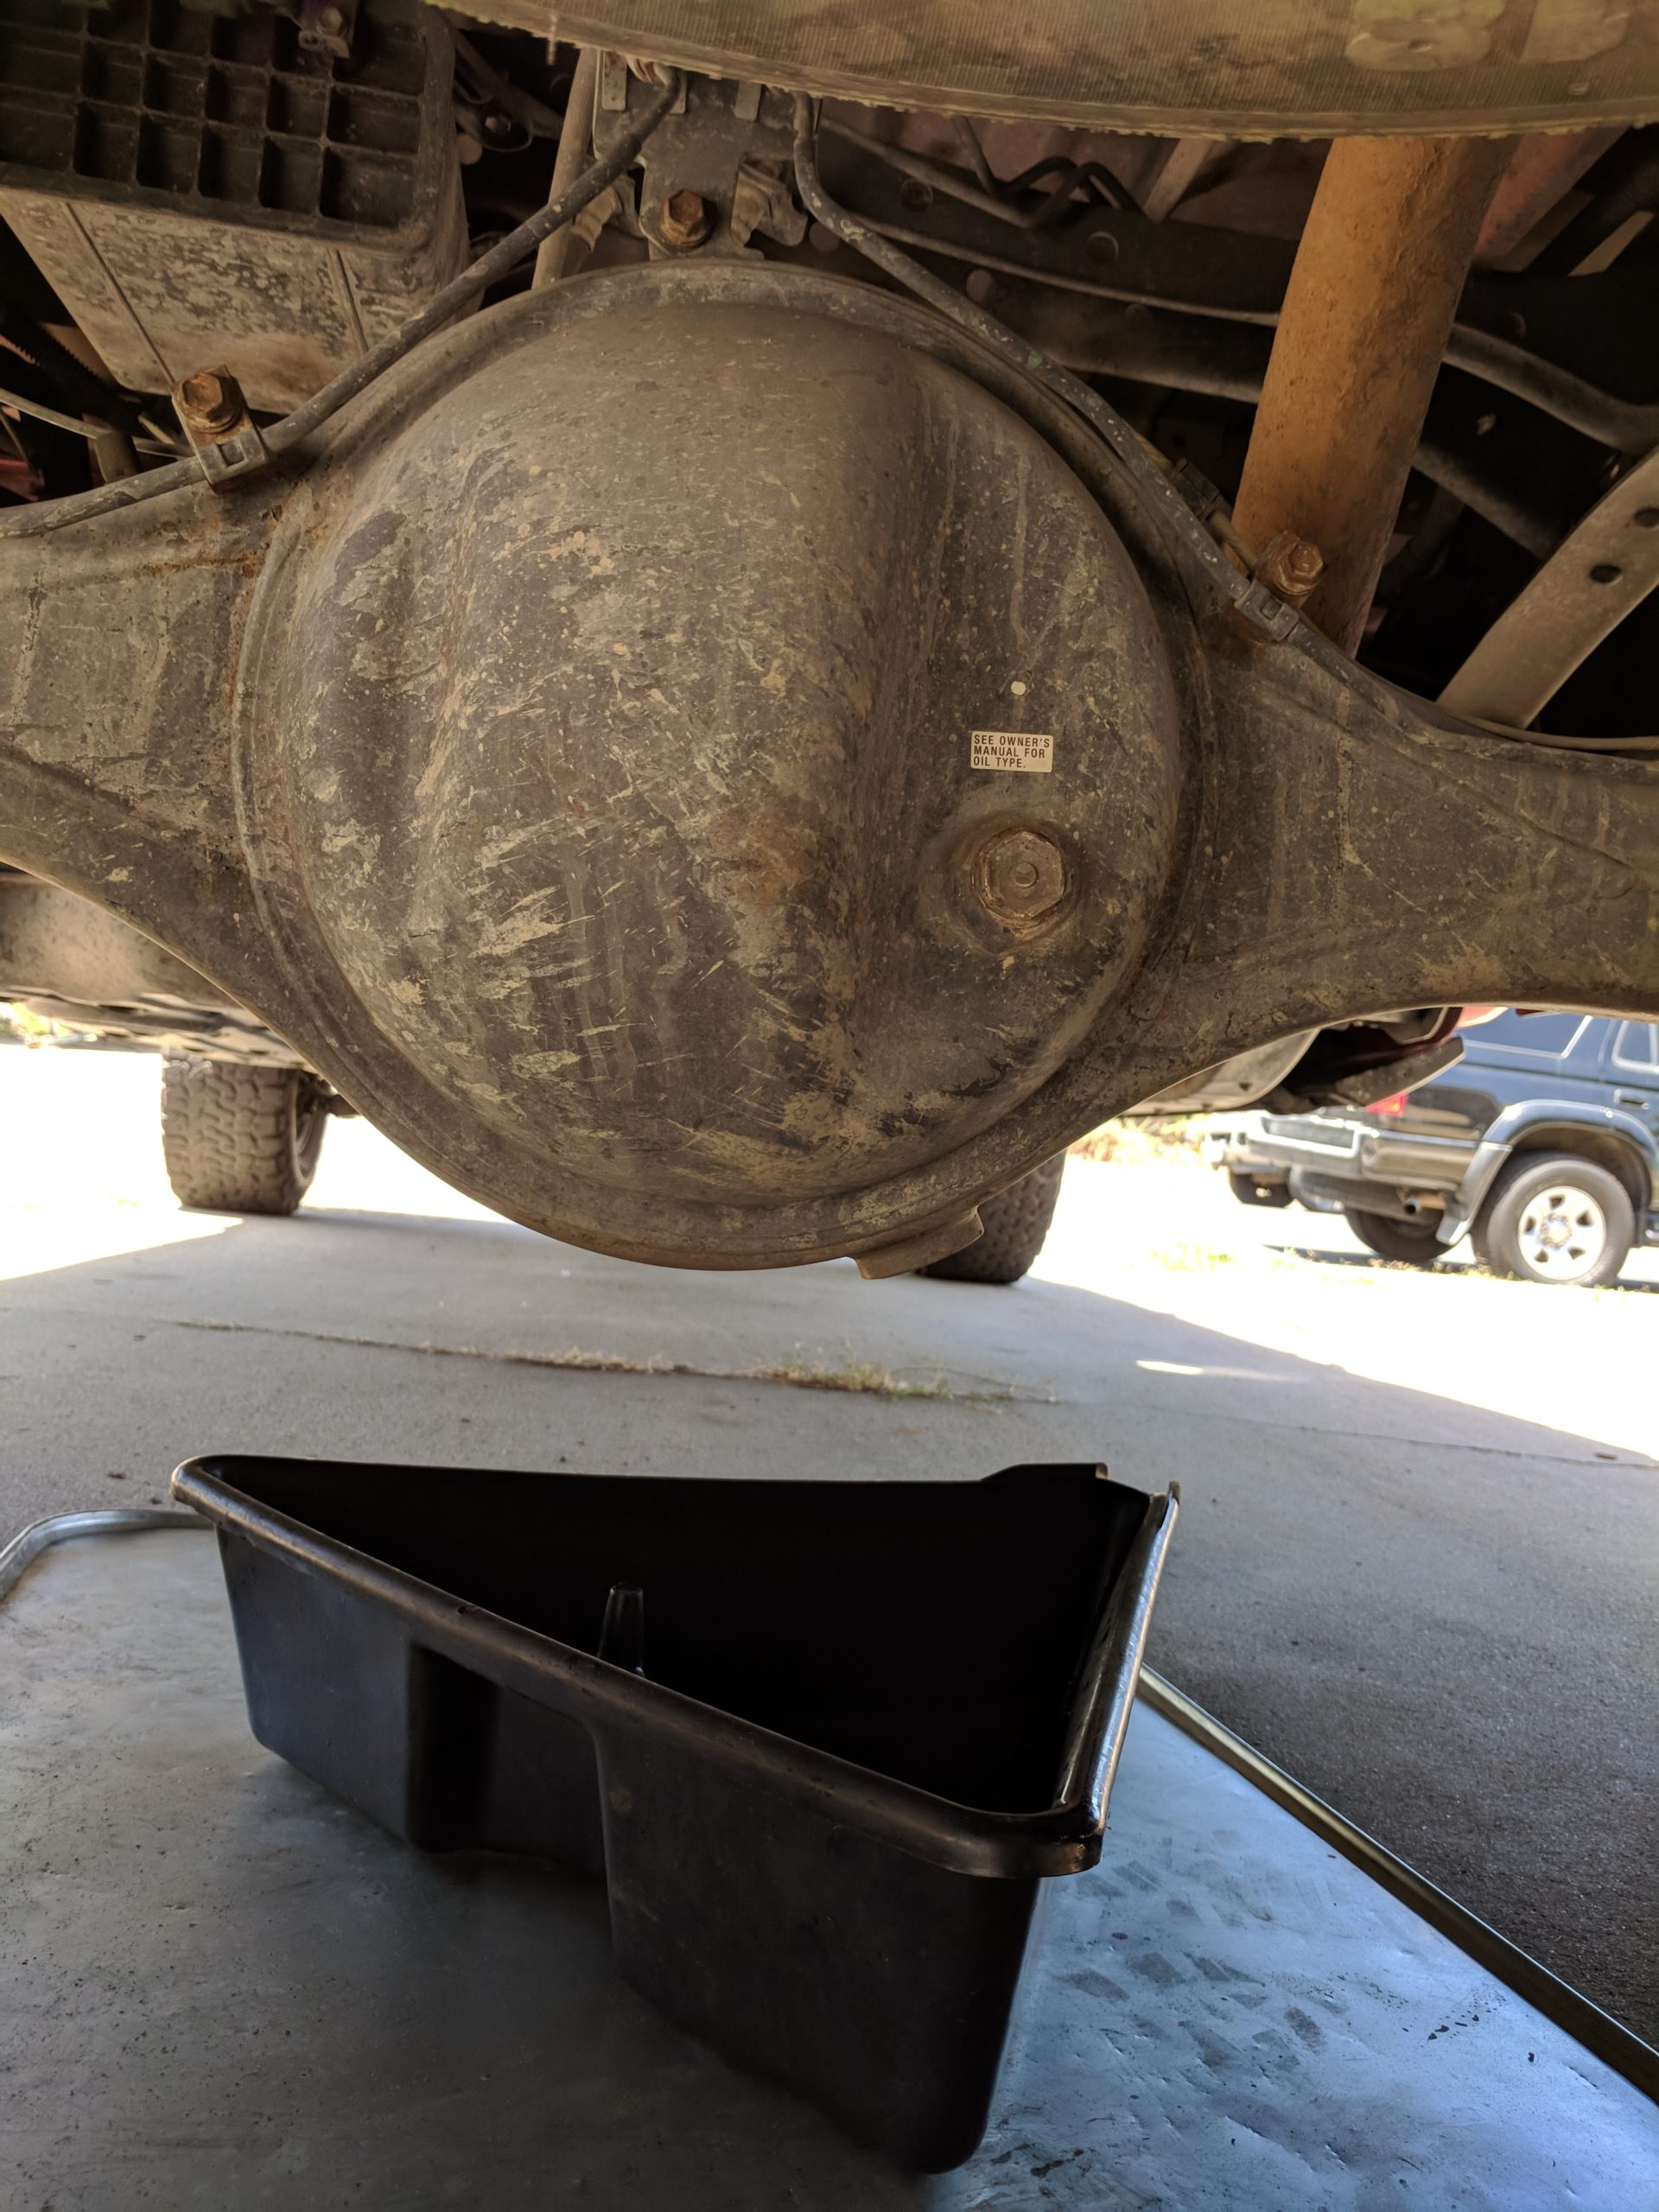 Differential fluid change - 2008 Toyota Tundra rear end